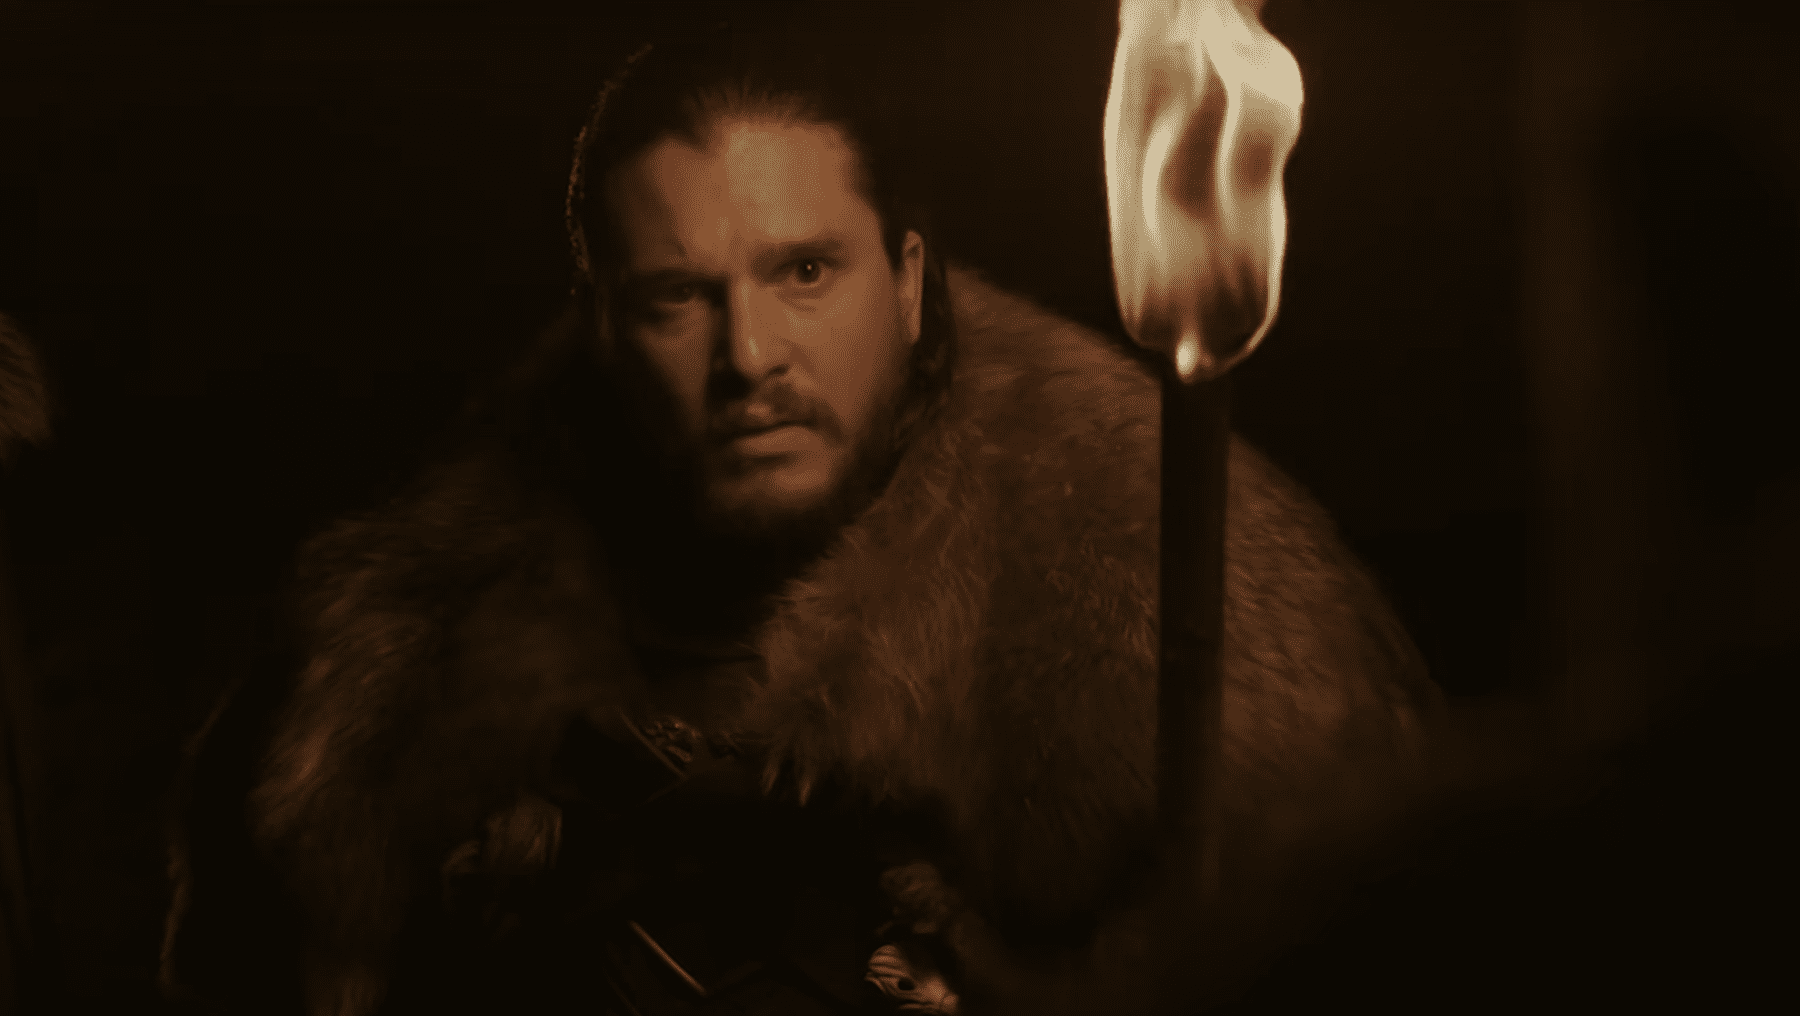 watch game of thrones season 8 - photo #37